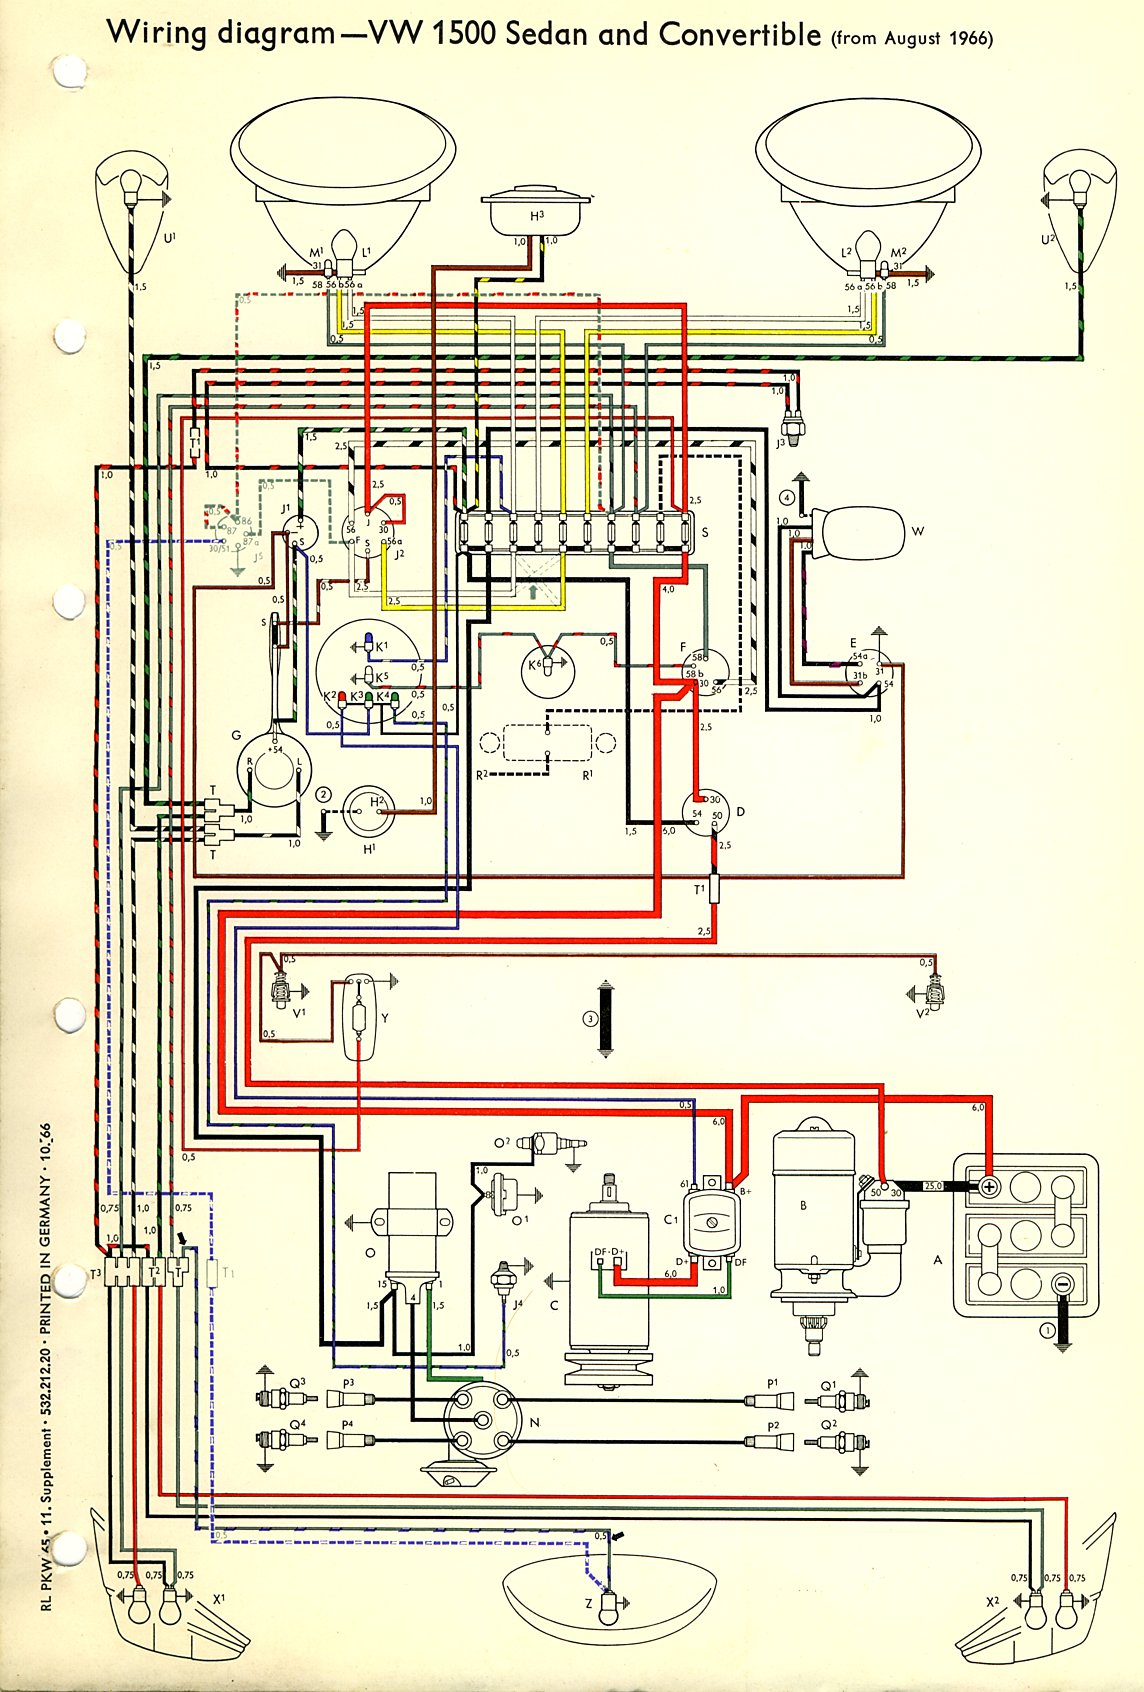 bug_67 67 vw bus wiring harness 71 vw wiring harness \u2022 wiring diagrams Wiring Harness Diagram at fashall.co